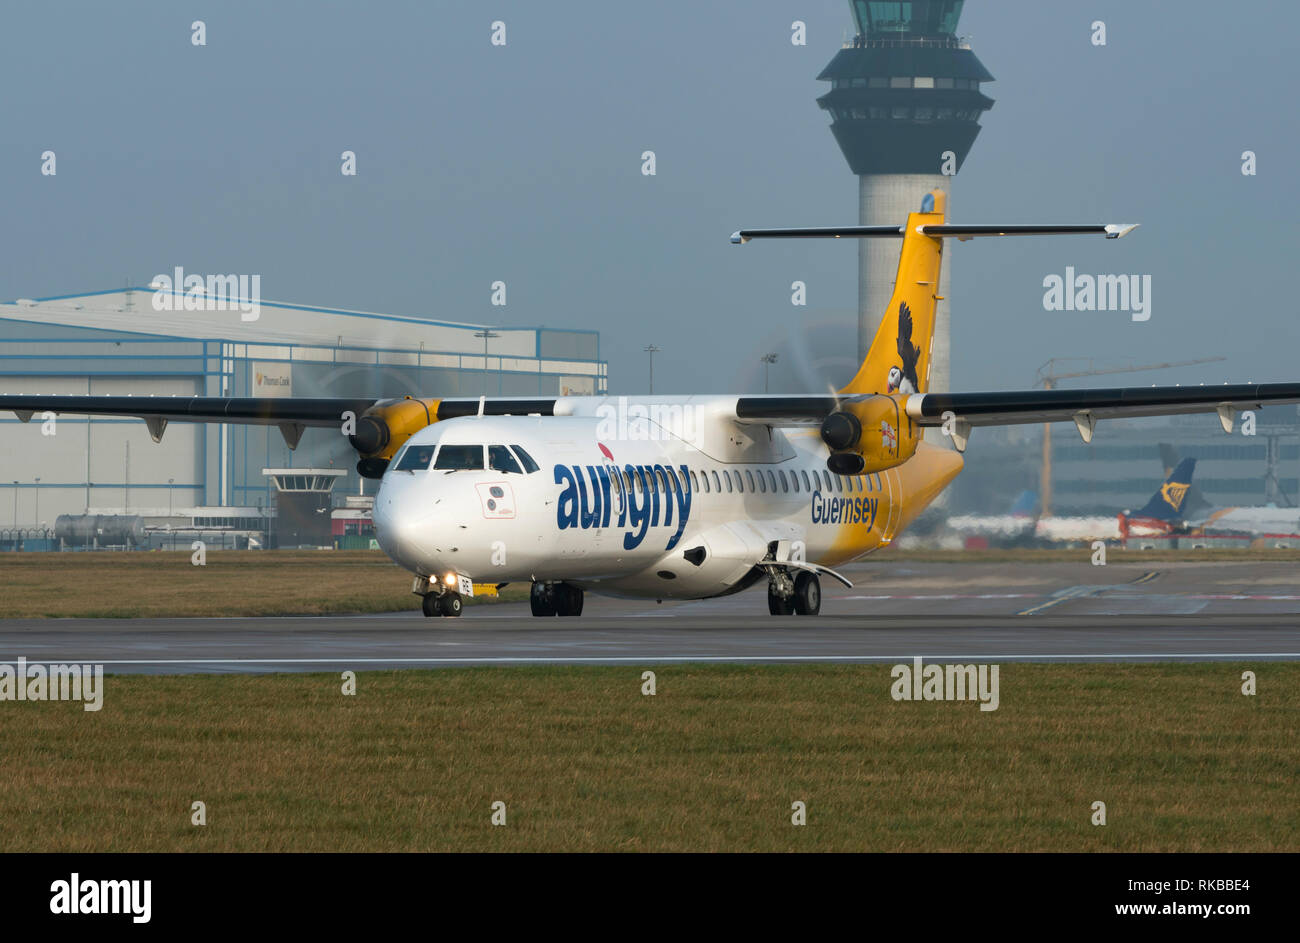 Aurigny Air Services, ATR 72-500, G-LERE taxying for take off at Manchester Airport - Stock Image